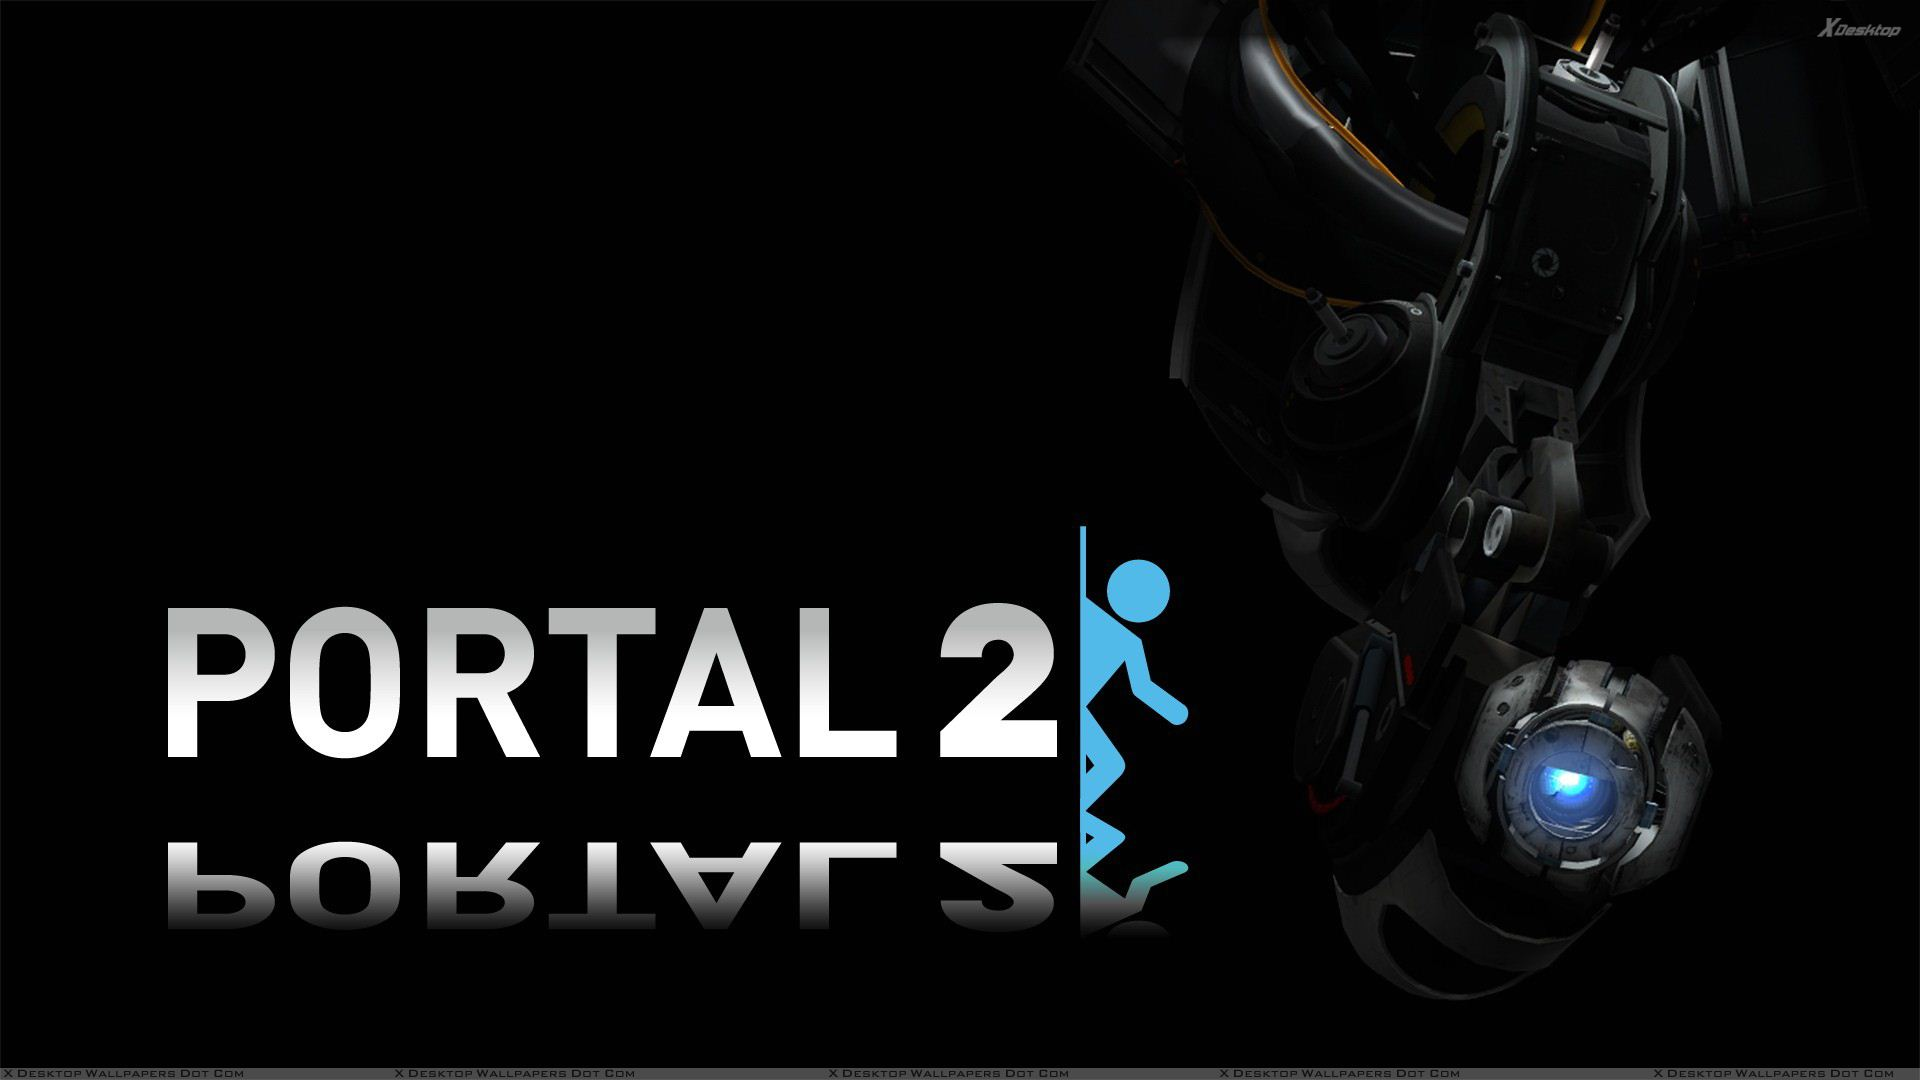 portal 2 wallpapers photos images in hd